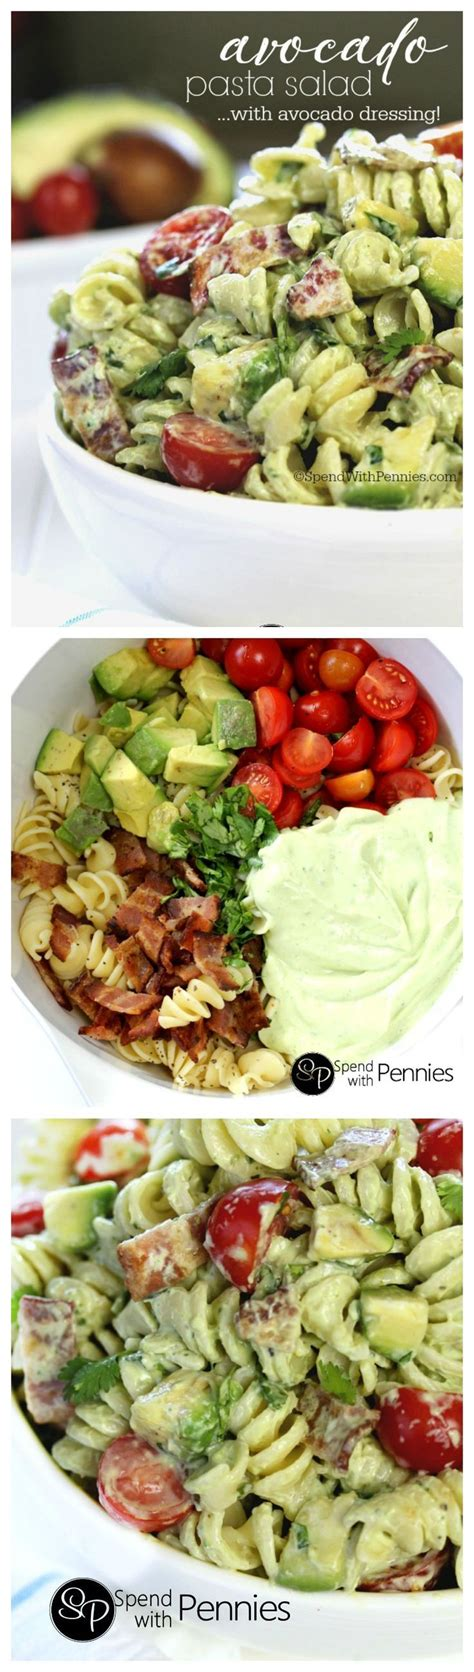 cold salad ideas best 20 cold pasta salads ideas on pinterest pasta